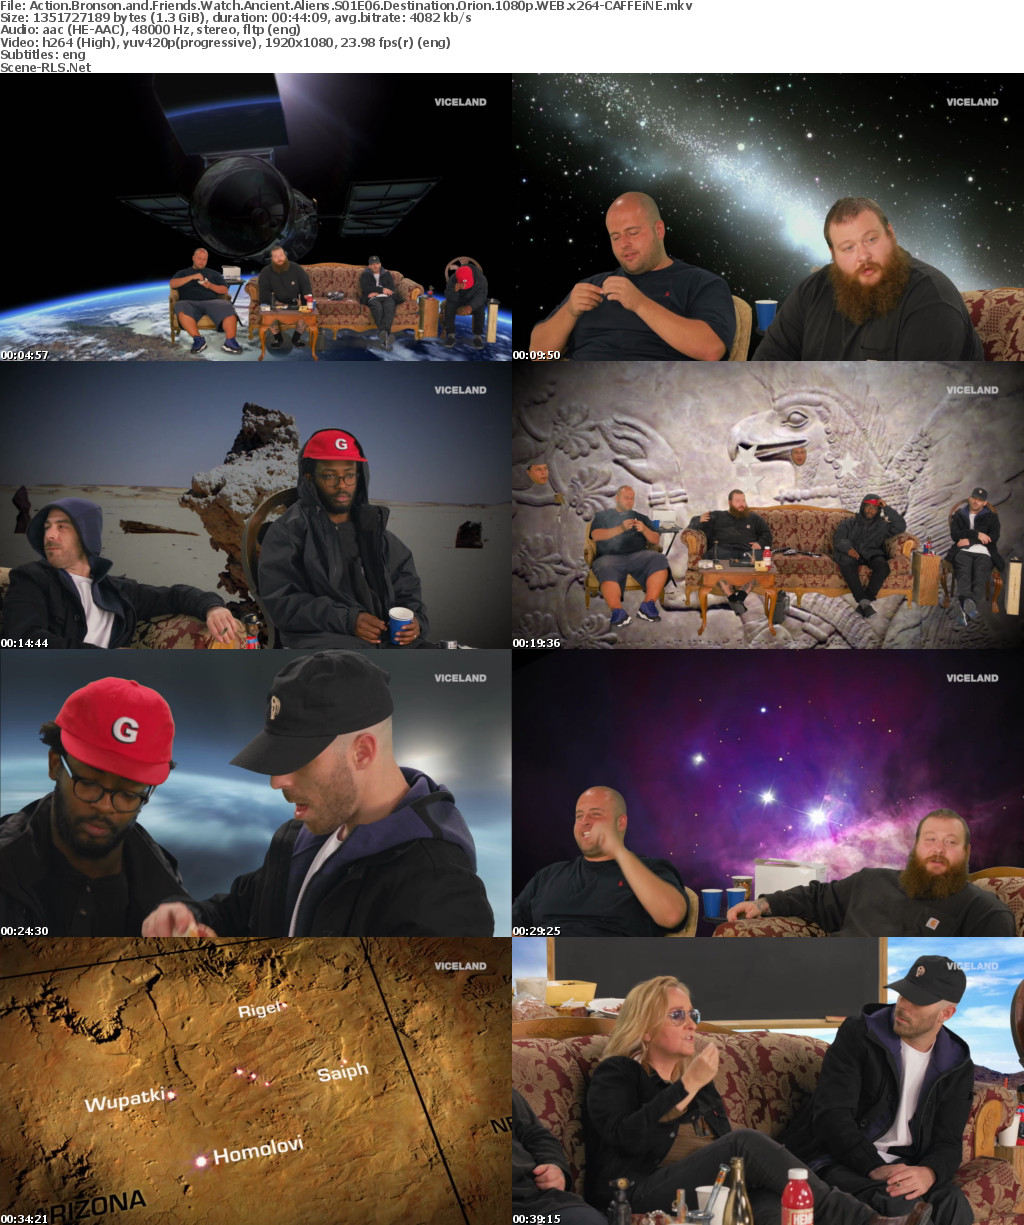 Action Bronson and Friends Watch Ancient Aliens S01E06